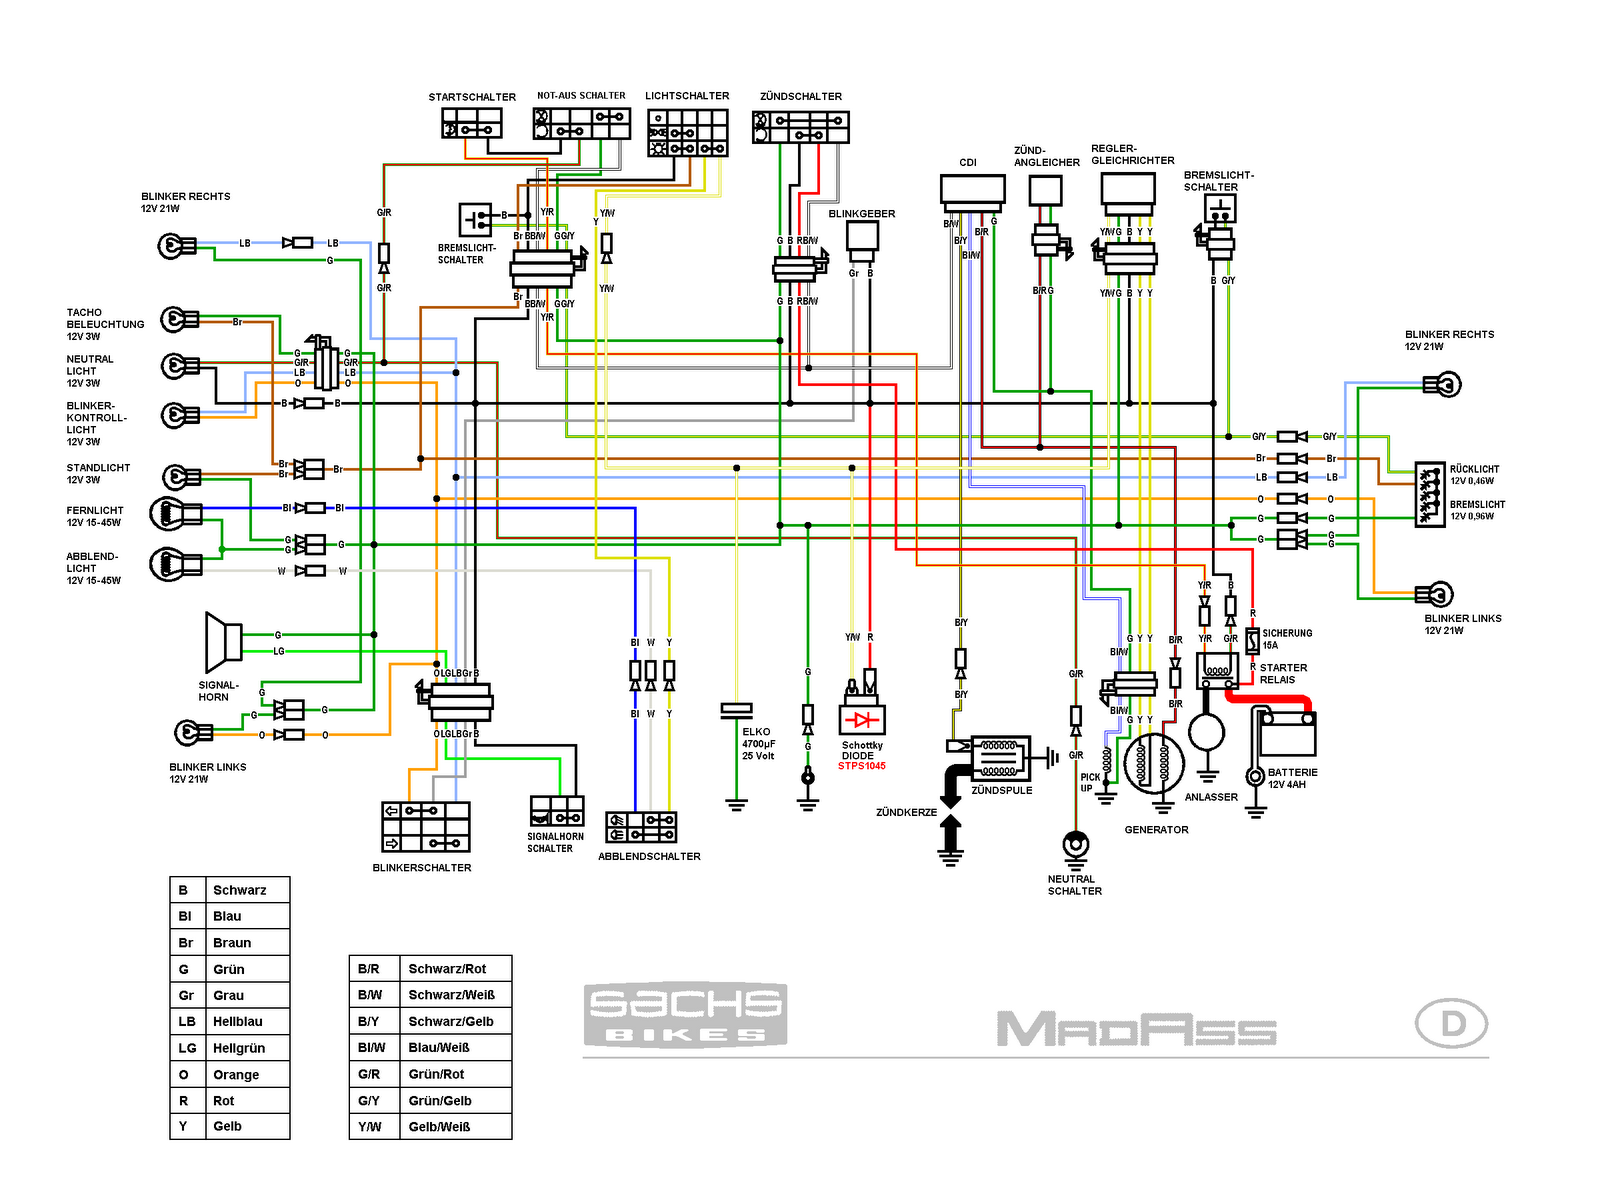 2001 Gsxr 600 Wiring Diagram - Wiring Diagrams DataUssel